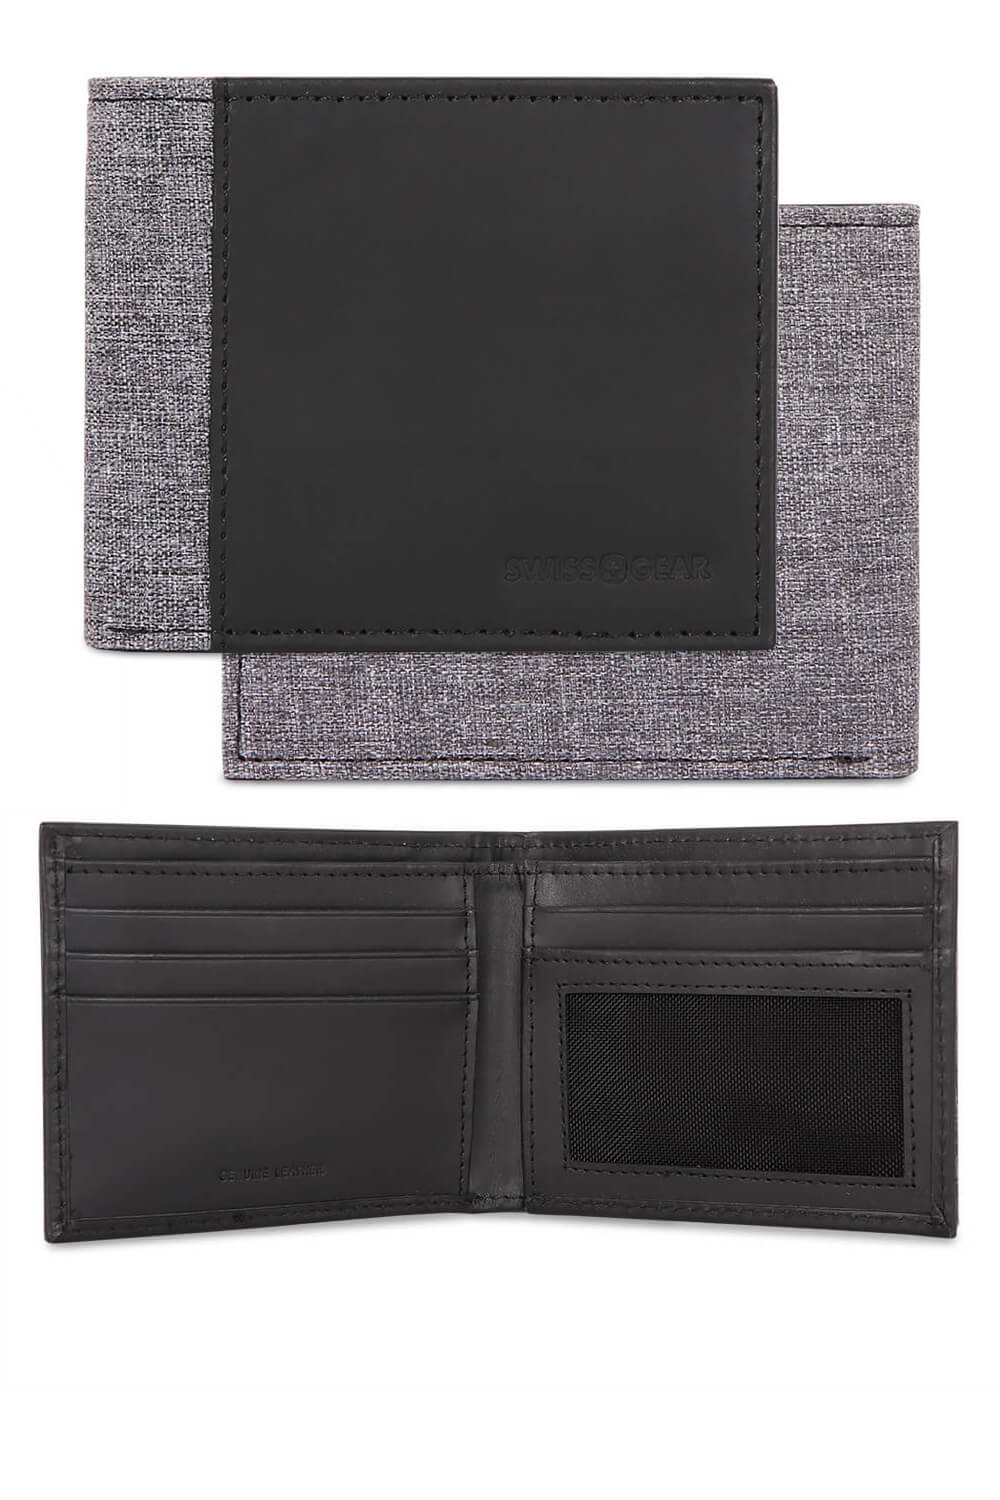 Heathered Black and Grey Bifold Wallet